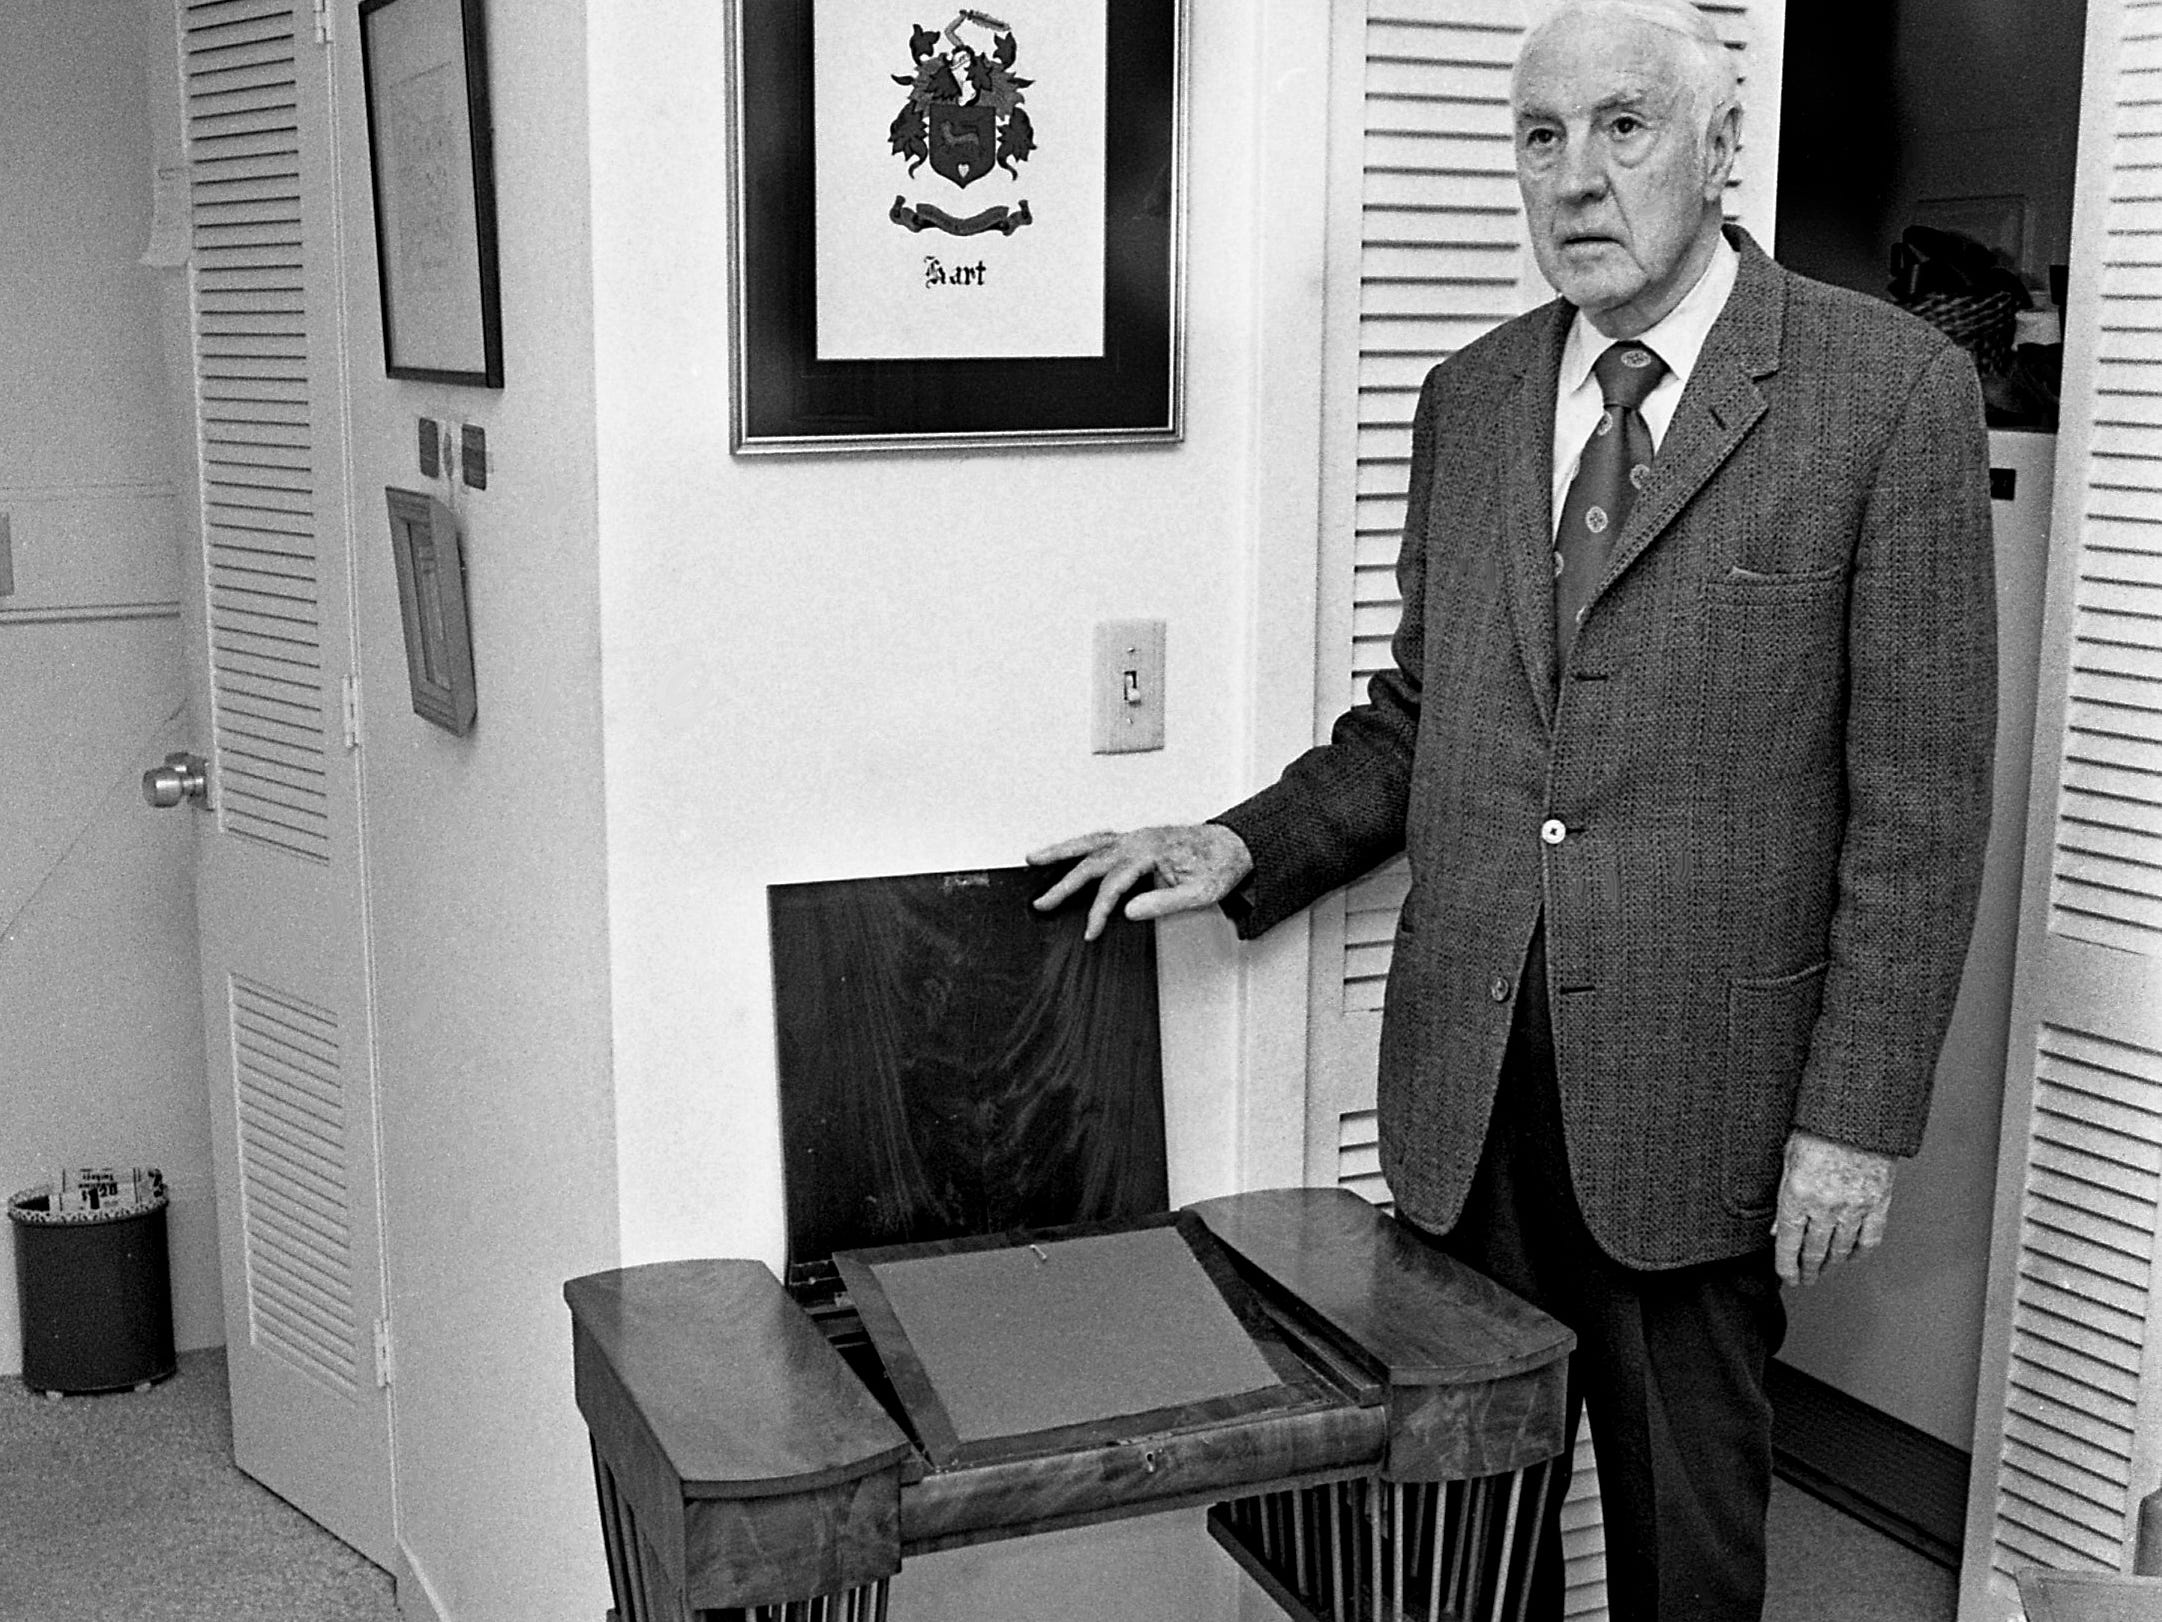 Terry Hart, descendant of the original owner of the Woodlawn, stands beside a small writing desk at the home at 127 Woodmont Blvd. on Feb. 20, 1979. The desk was given by Andrew Jackson to his friend Willoughby Williams, great-grandfather of Hart. Williams was the son-in-law of Capt. John Nichols, who built the house in 1812, and took possession of the house in 1823.